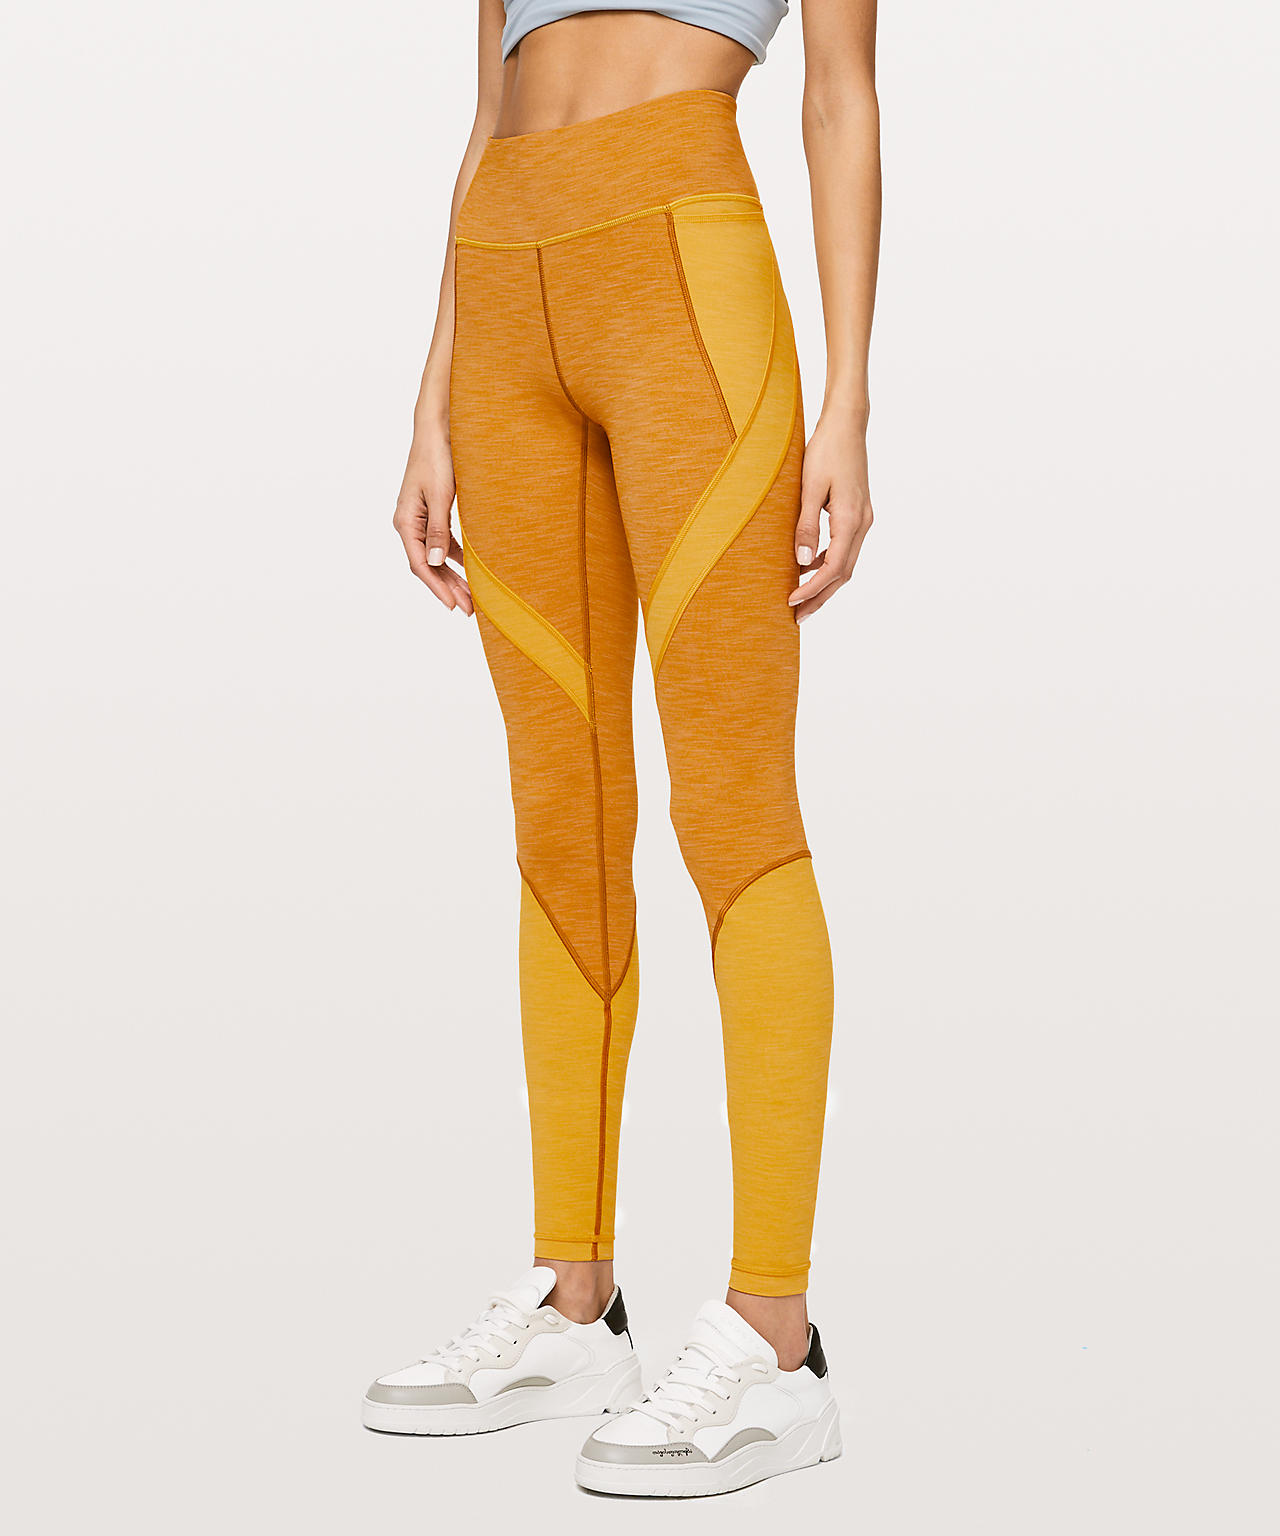 Early Extension High-Rise Tight, Lululemon Upload